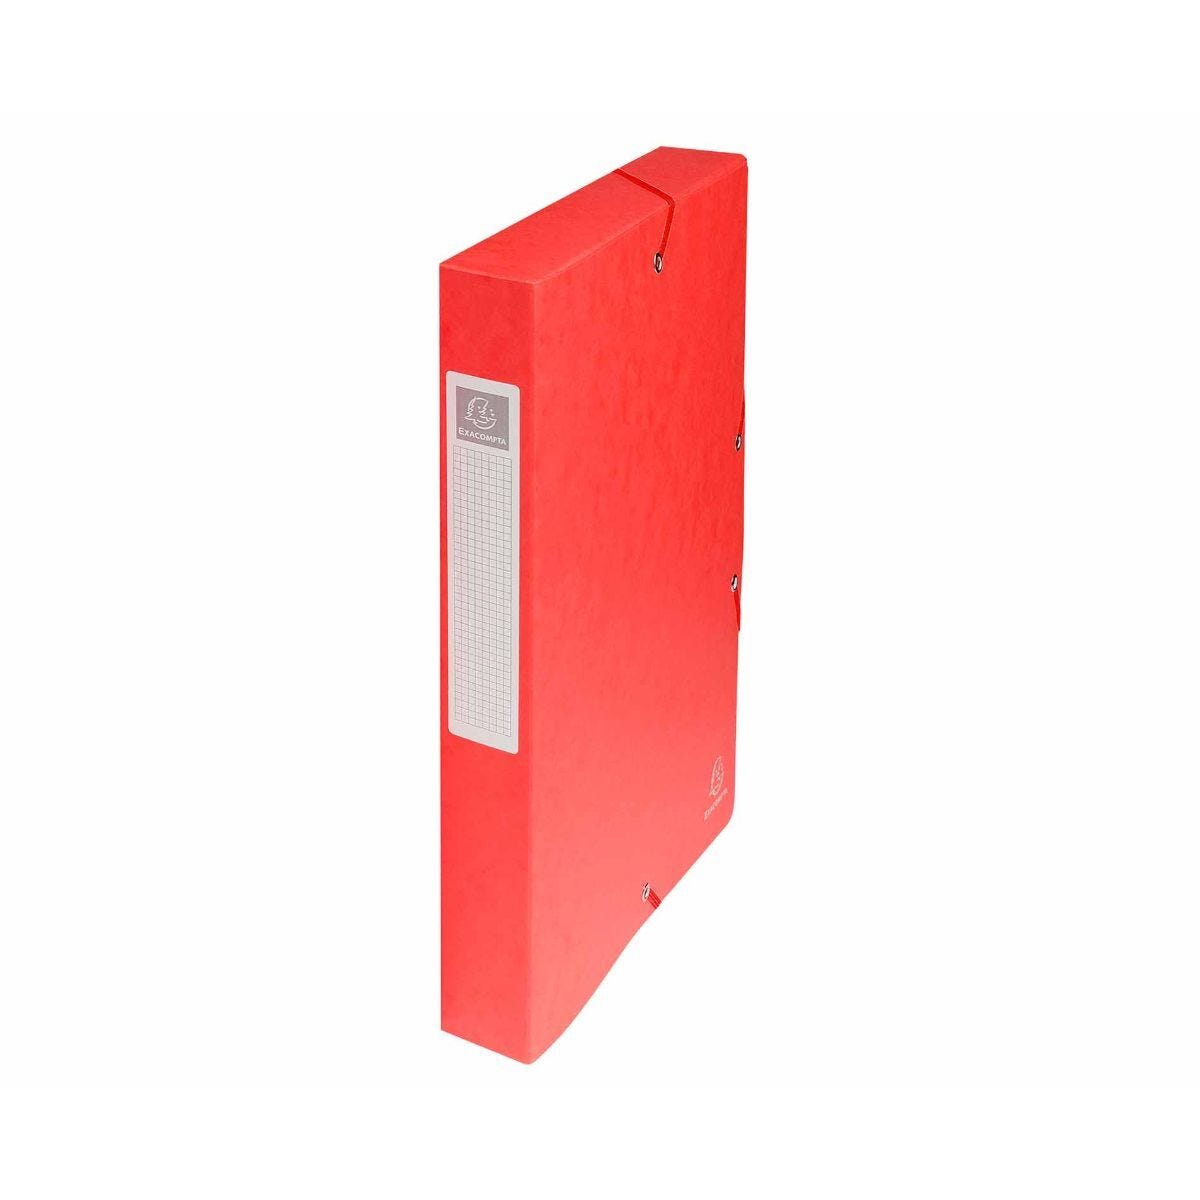 Exacompta Box File A4 40mm Pack of 8 Red